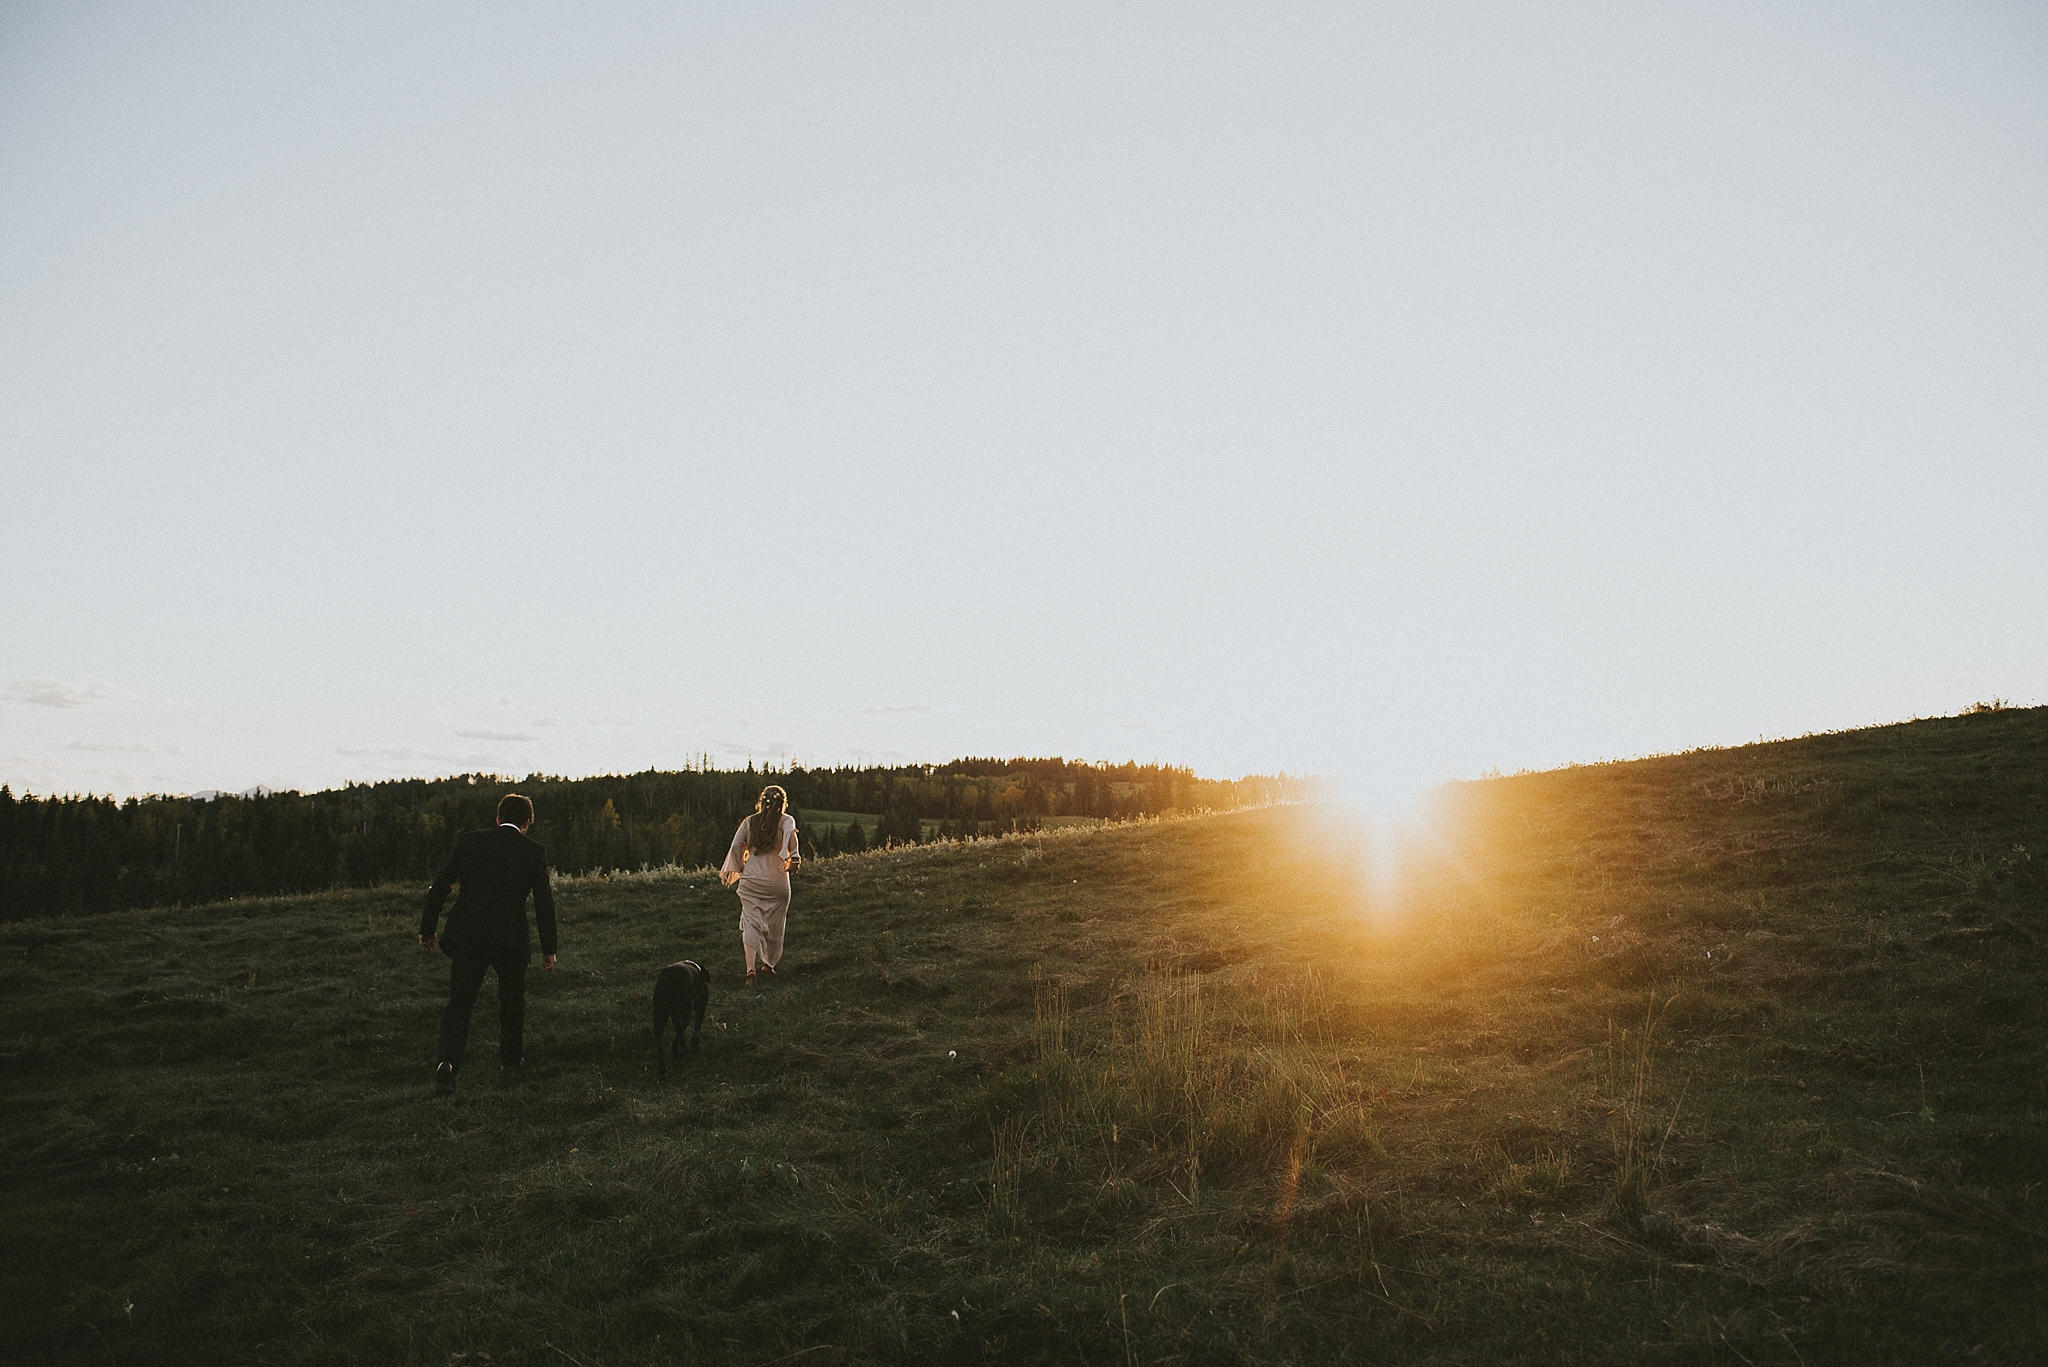 bride groom dog walk field sunset kananaskis